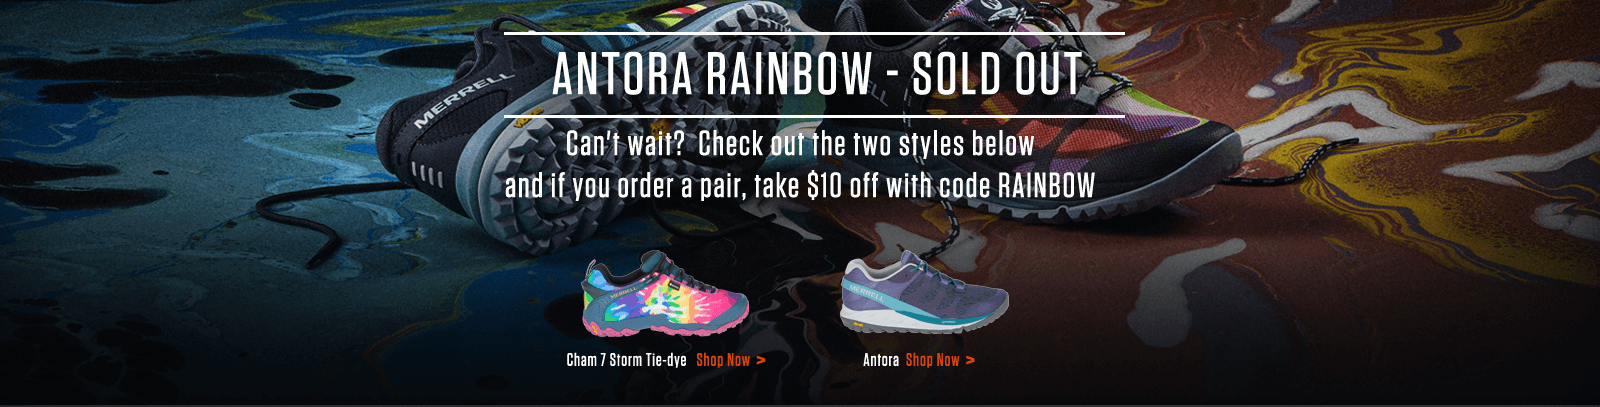 Antora Rainbow - Soldout | Can't wait? Check out the two styles below and if you order a pair, take $10 off with code RAINBOW